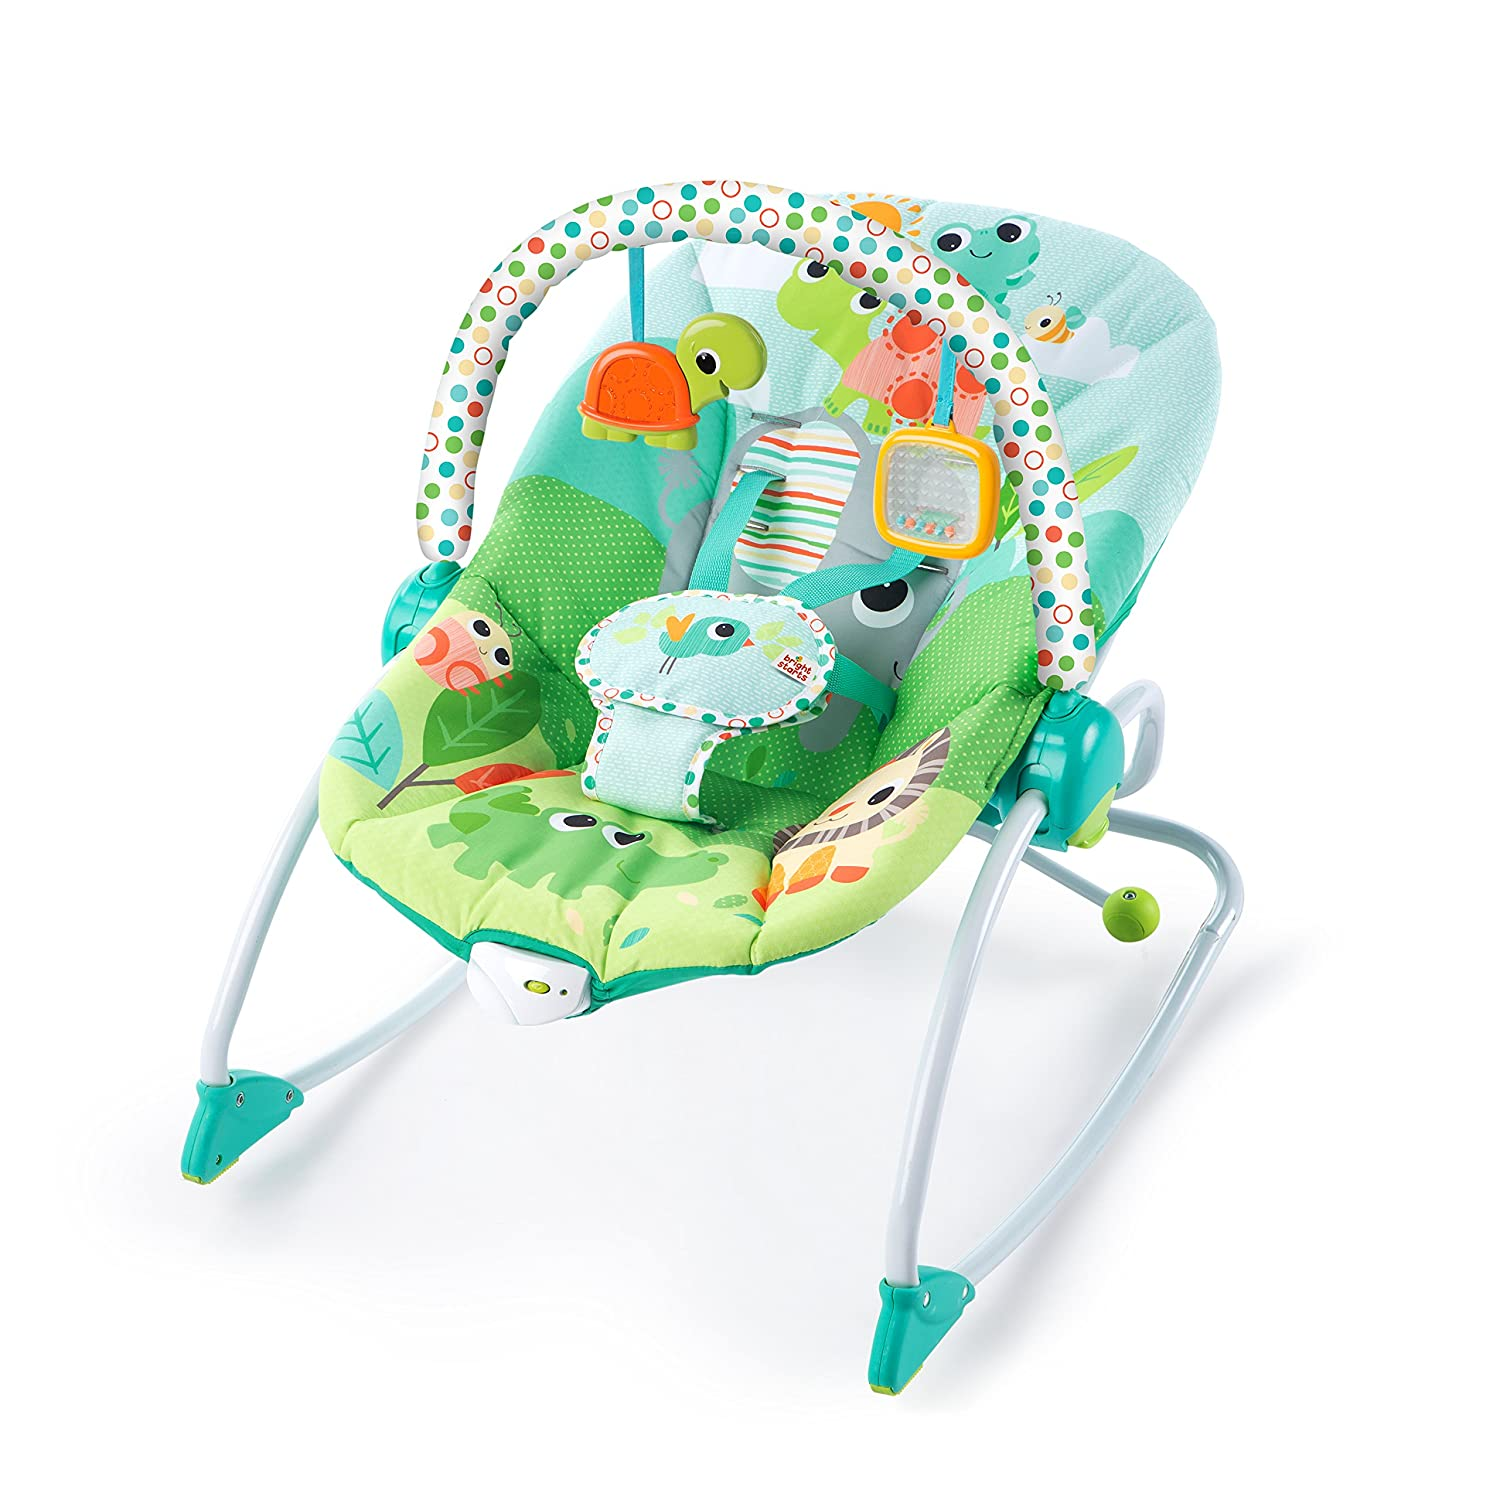 Bright Starts Playful Parade Transat Evolutif KIDFF 10886-3-W11